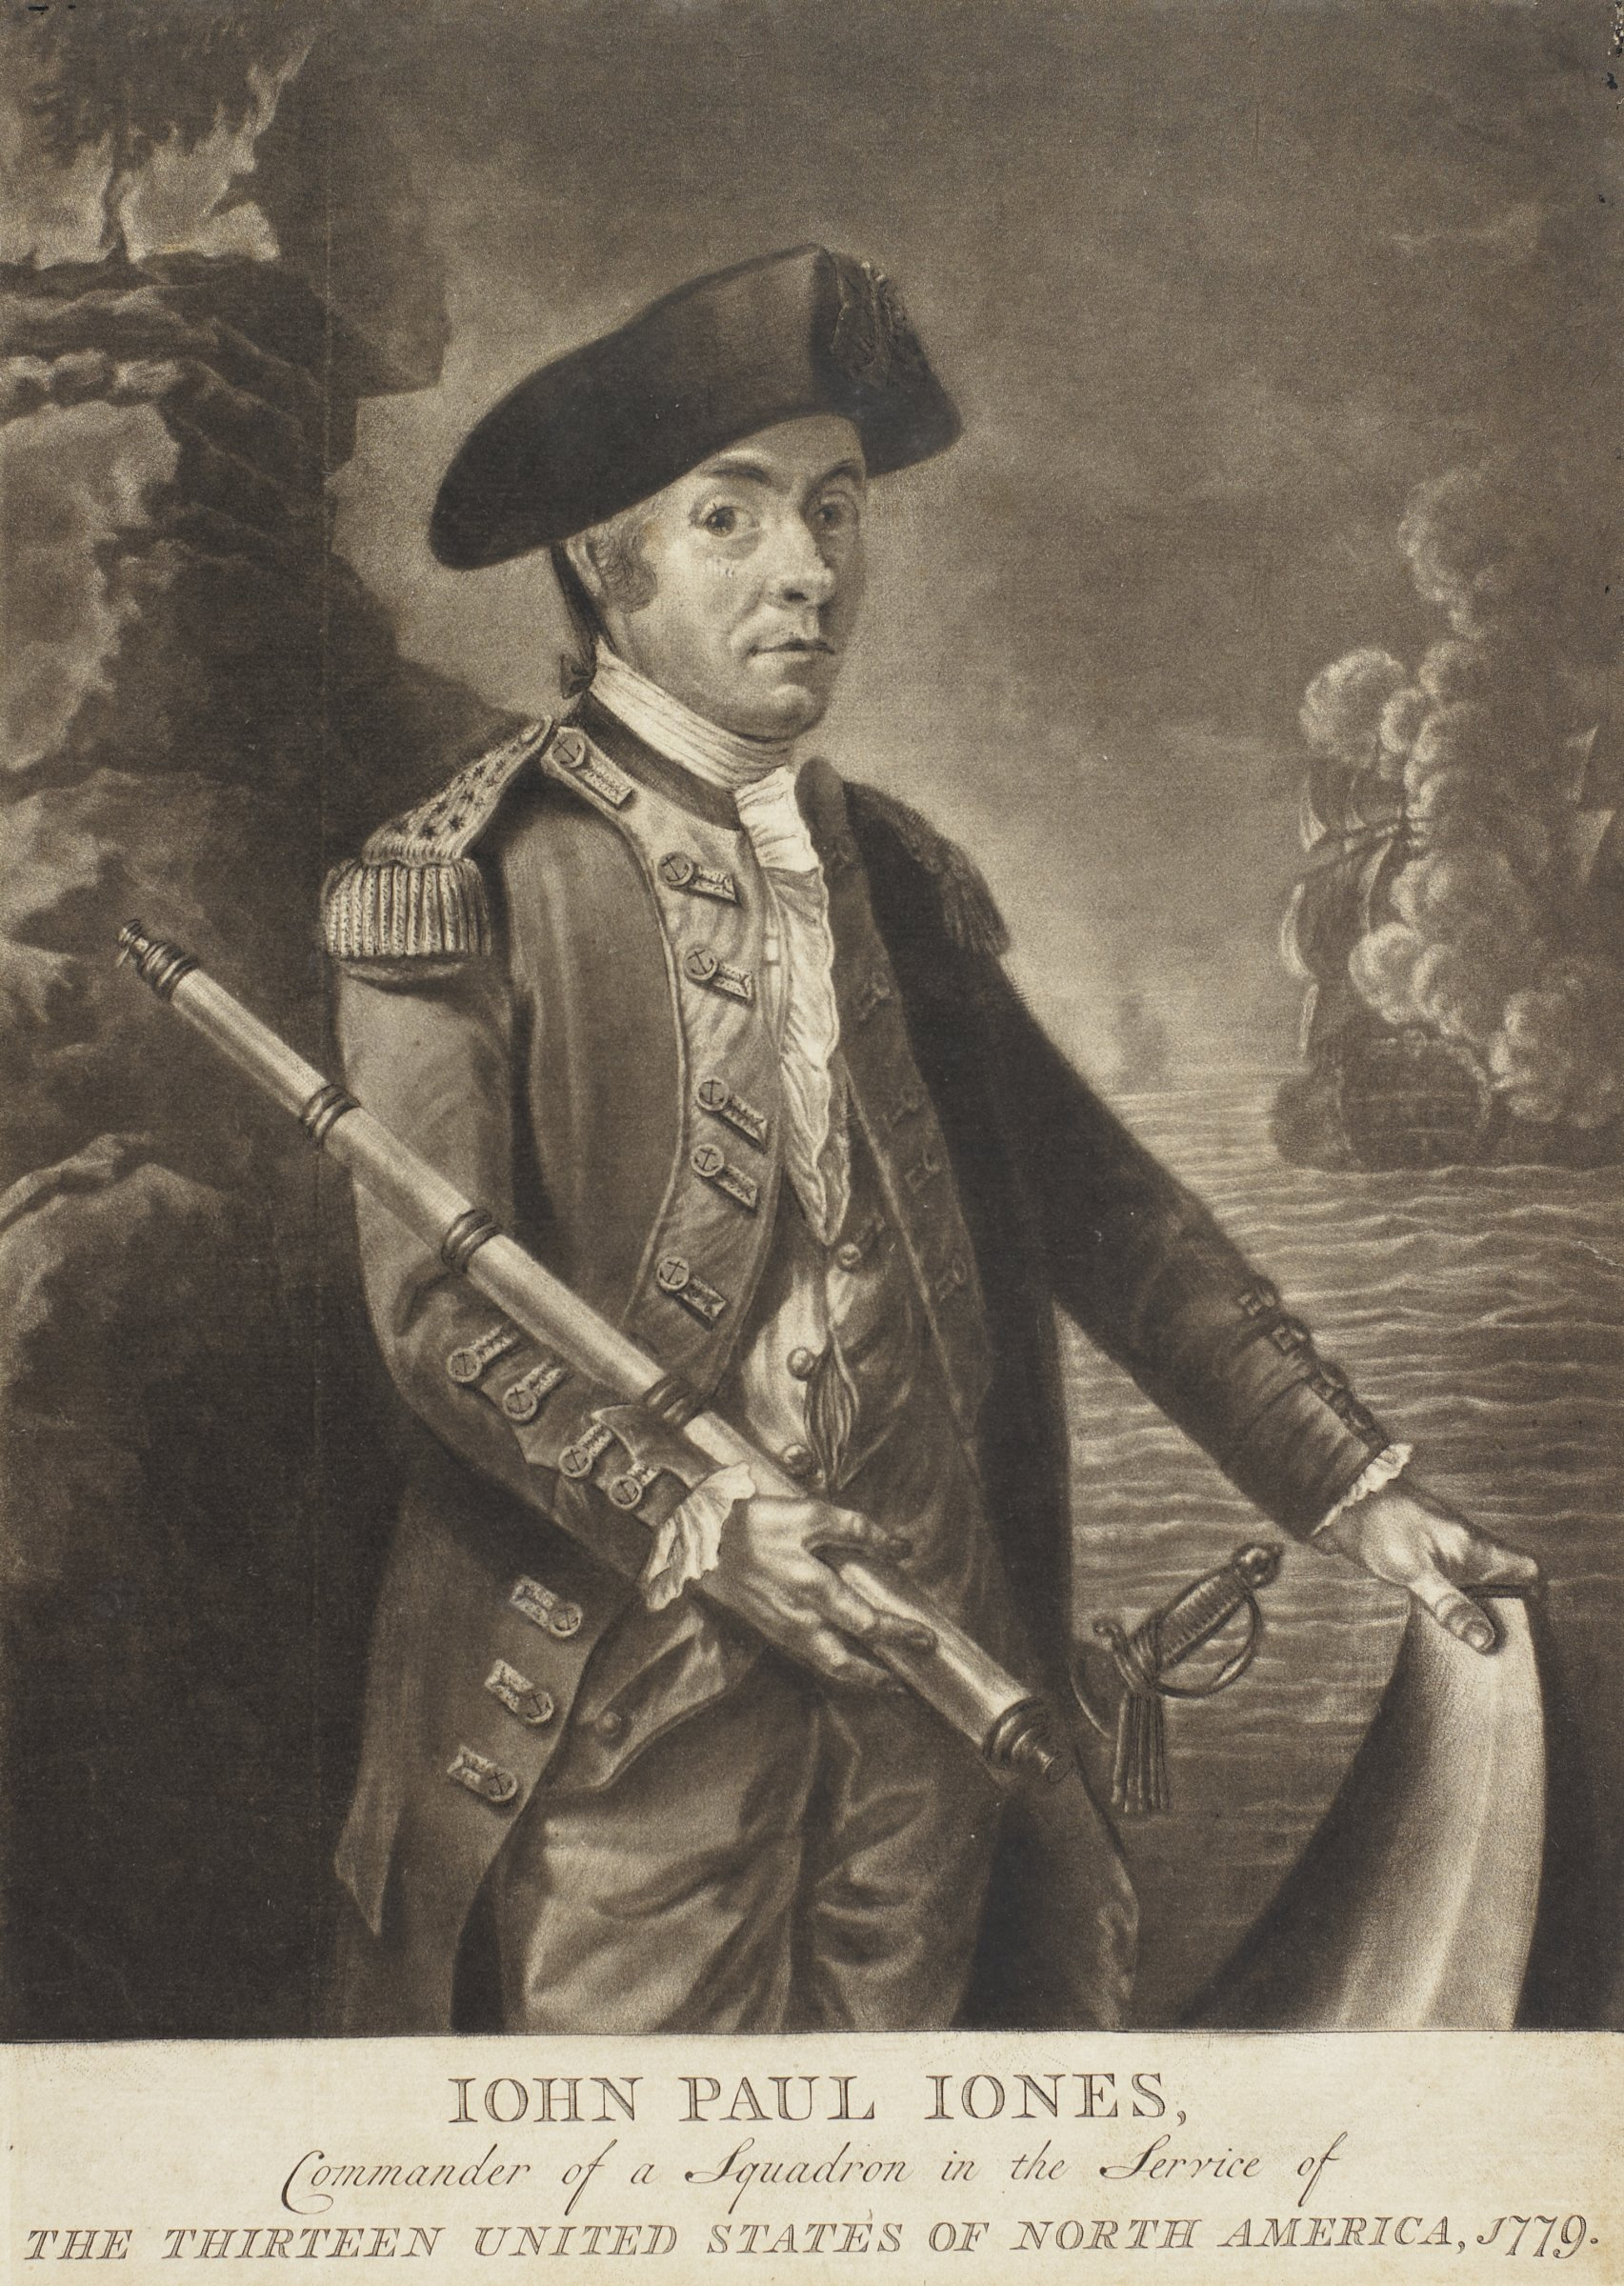 Three-quarter length portrait of a naval officer in uniform who is holding a telescope. His left hand rests on the fluke of an anchor. In the background are tall rocks on the left and a naval battle on the right.